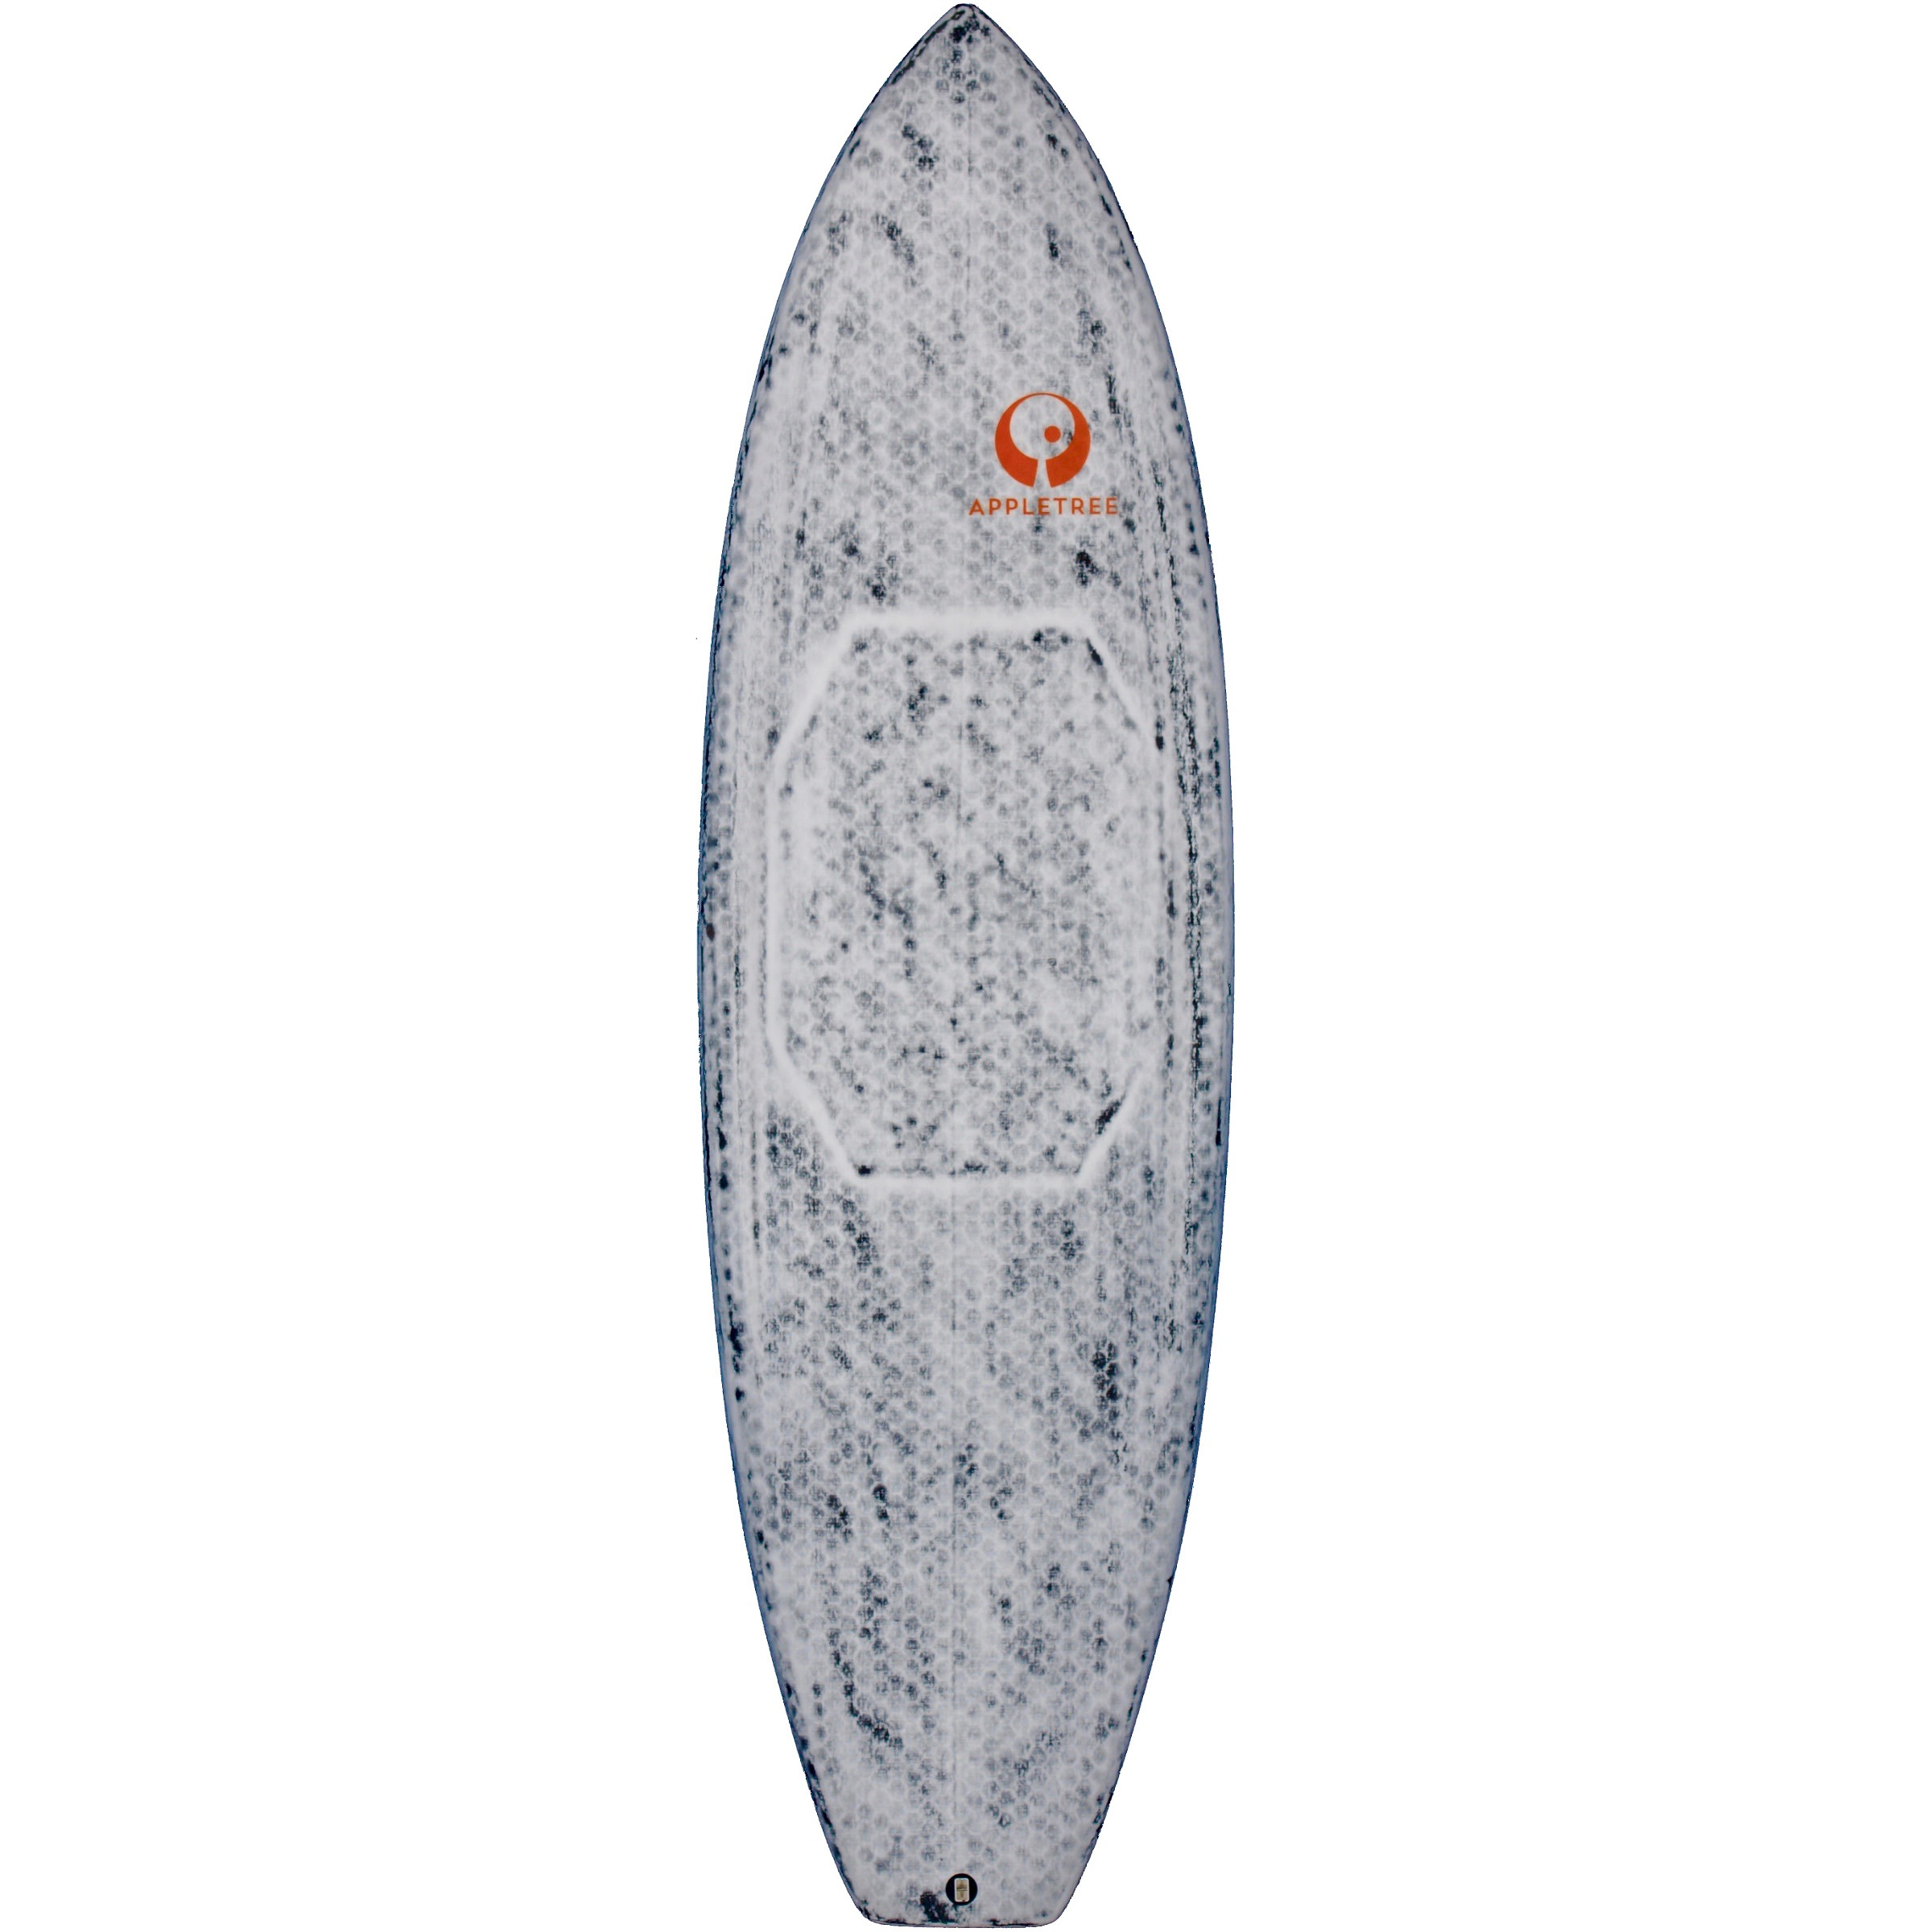 Appletree Applino 2018 Full Carbon Surfboard